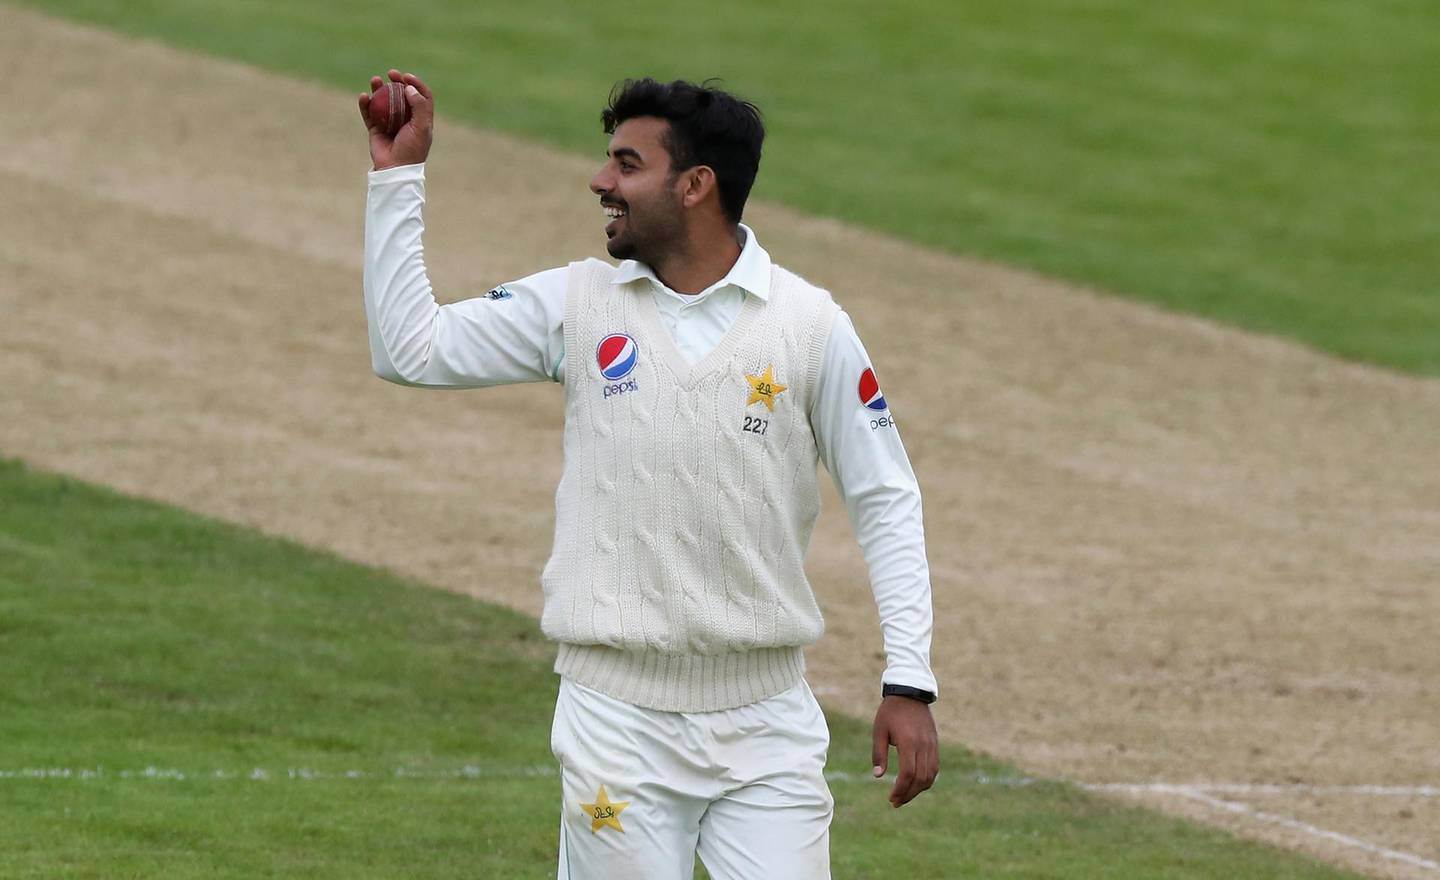 NORTHAMPTON, ENGLAND - MAY 04:  Shadab Khan of Pakistan, catches the ball after taking six wickets during the tour match between Northamptonshire and Pakistan at The County Ground on May 4, 2018 in Northampton, England.  (Photo by David Rogers/Getty Images)